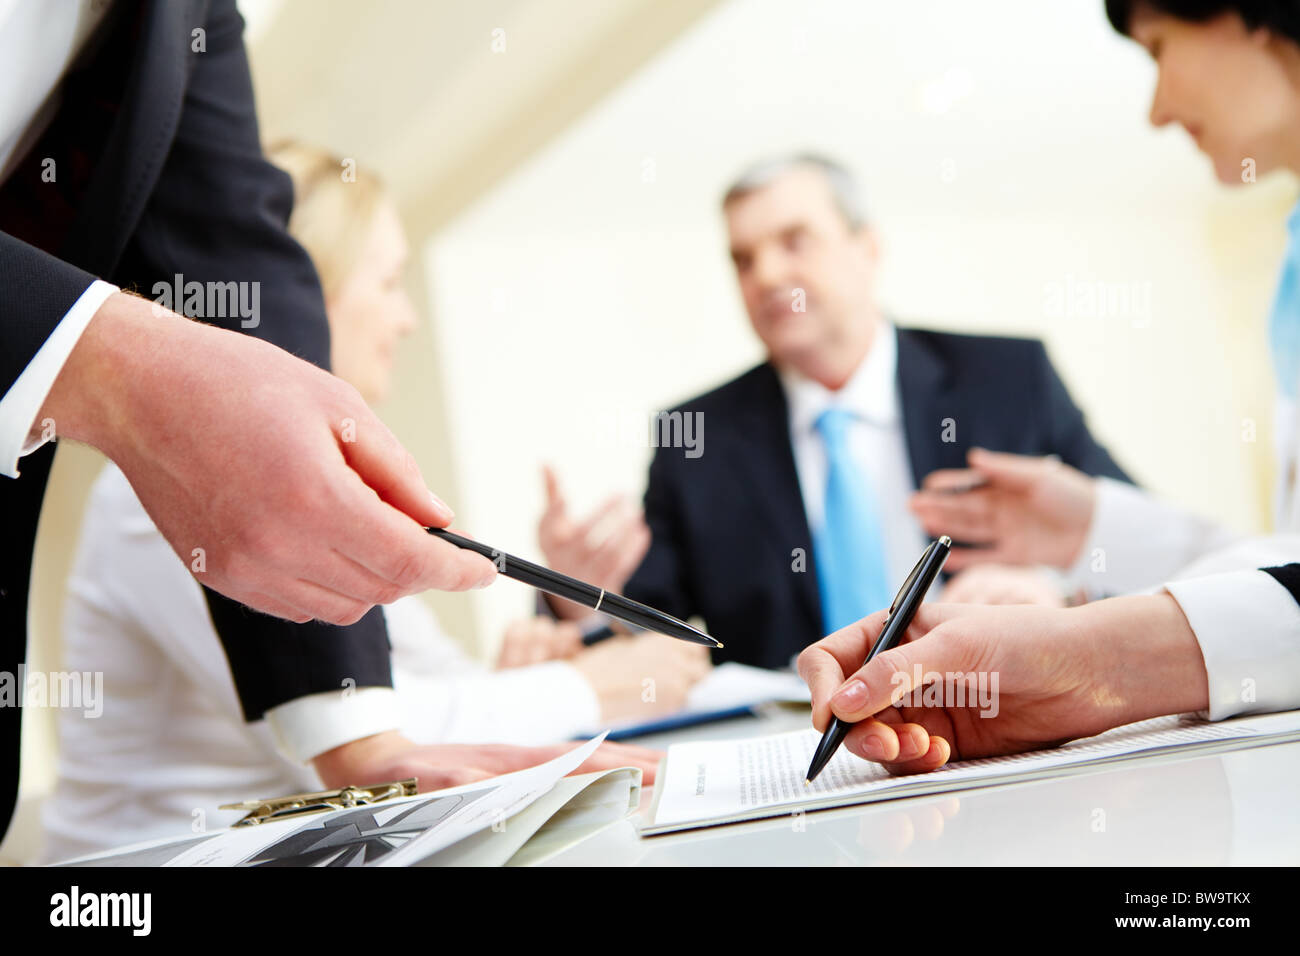 Close-up of business partners hands during discussion in working environment - Stock Image